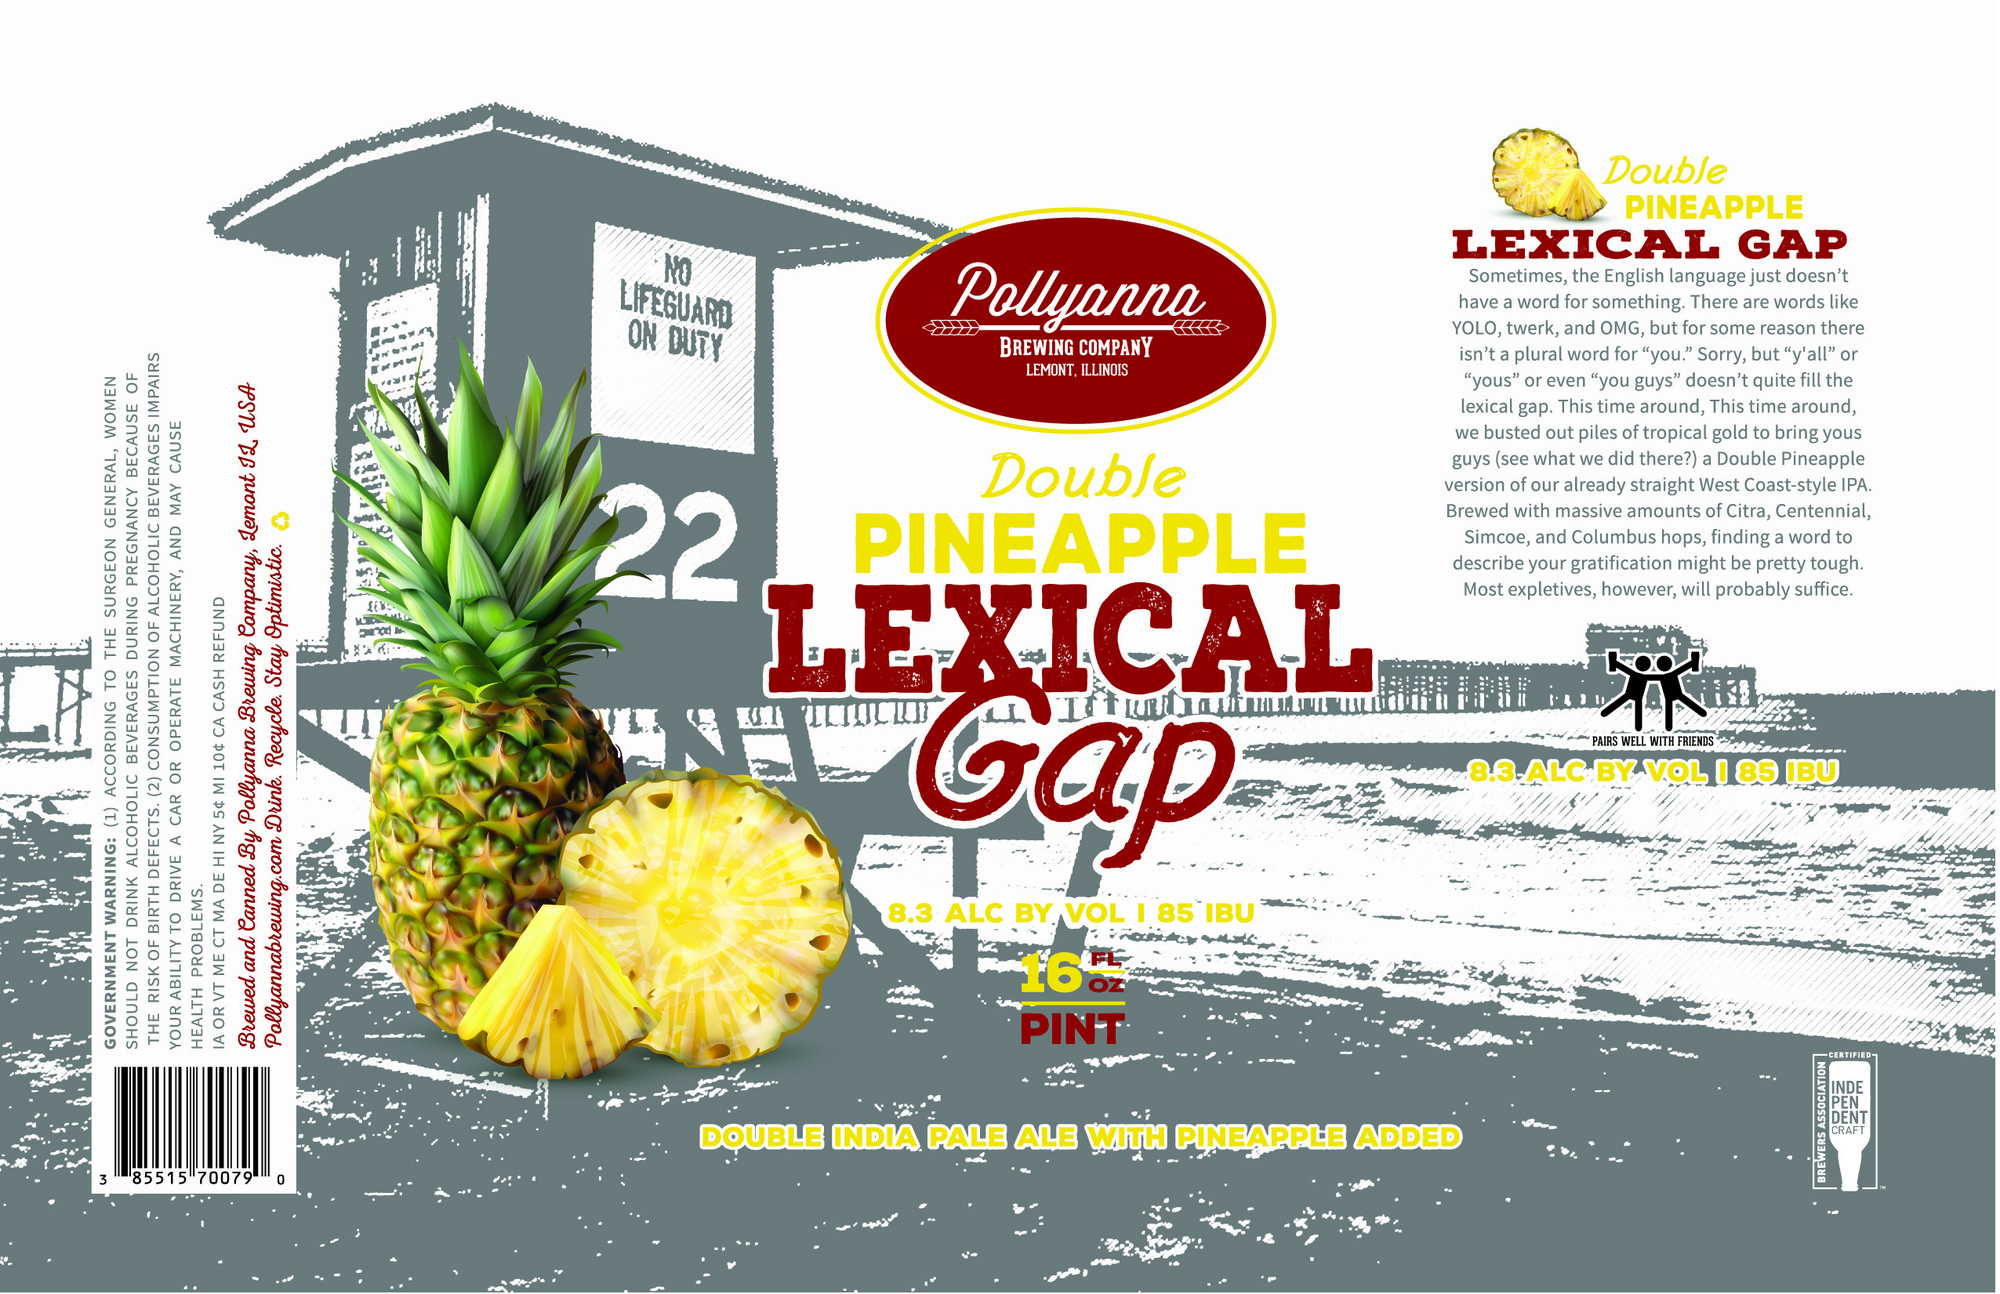 Pollyanna Double Pineapple Lexical Gap beer Label Full Size